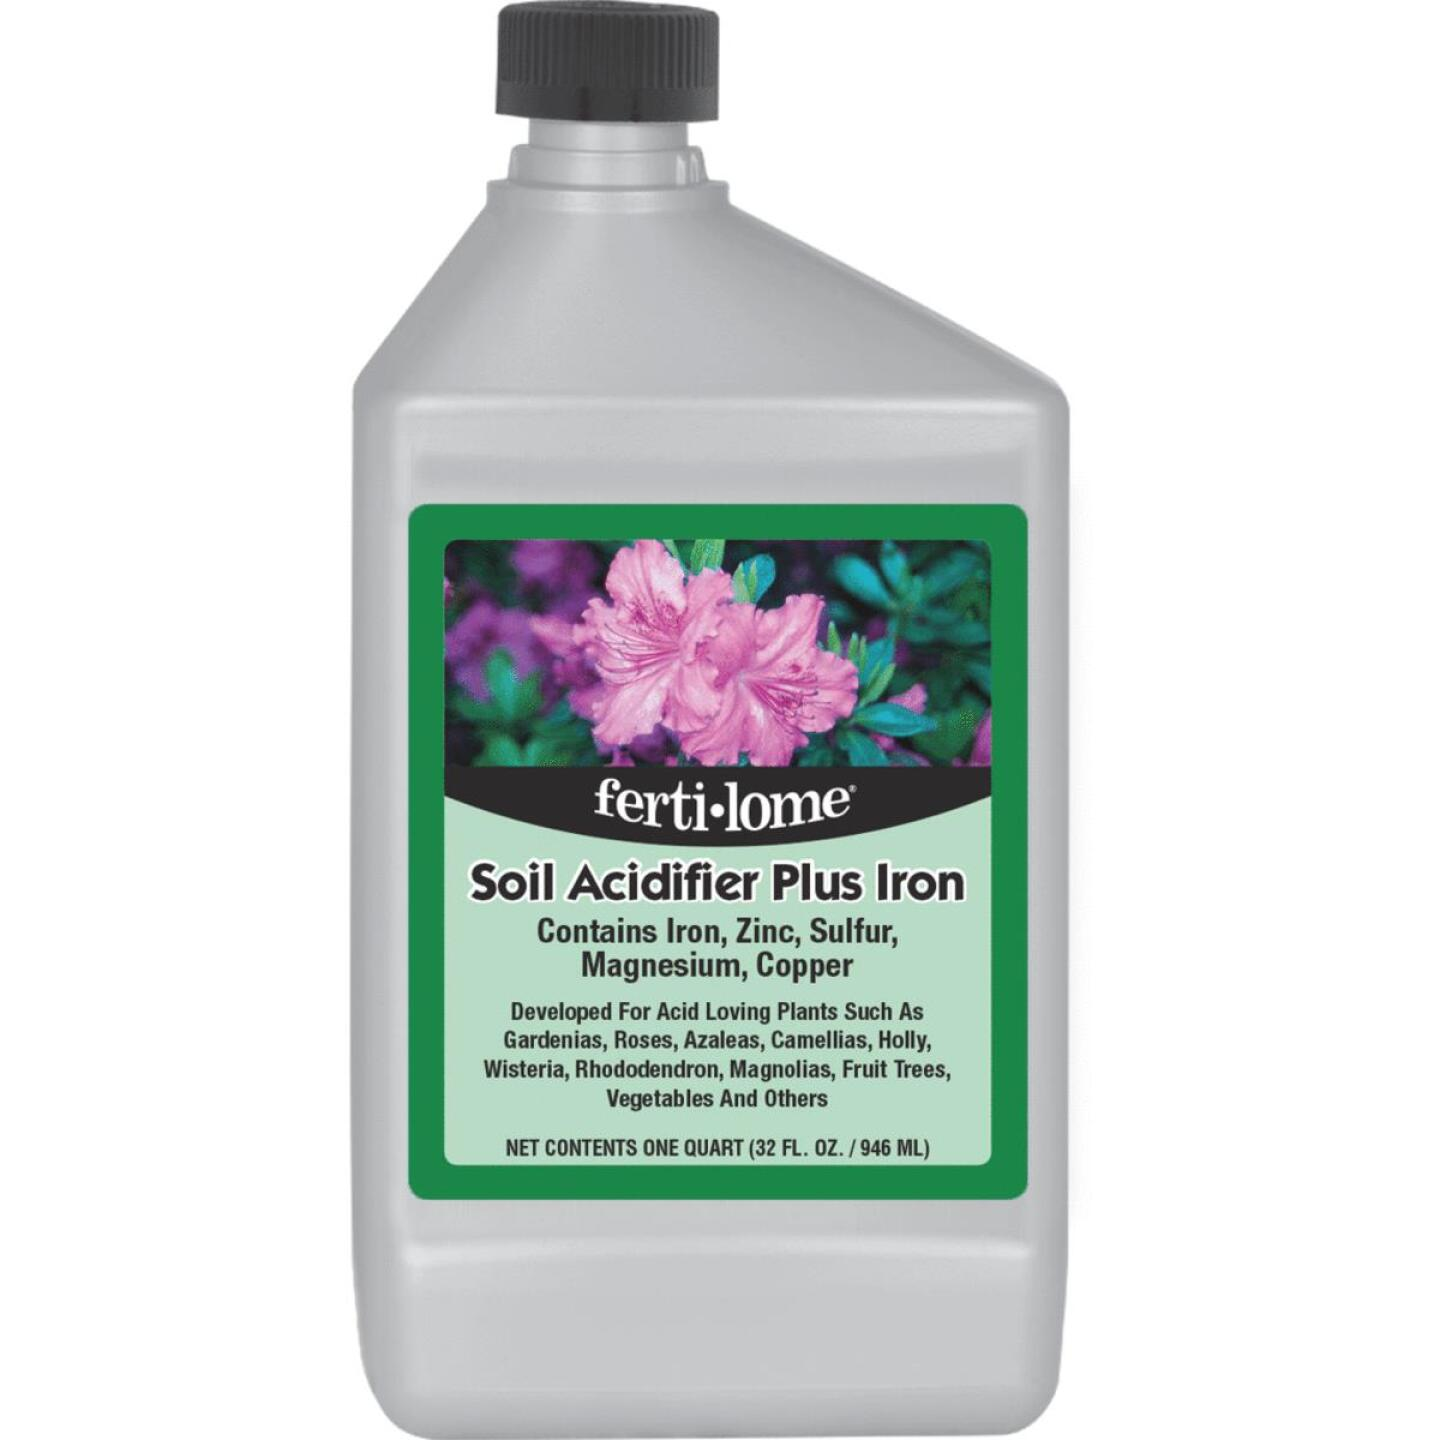 Ferti-lome 1 Qt. Iron Soil Acidifier Image 1